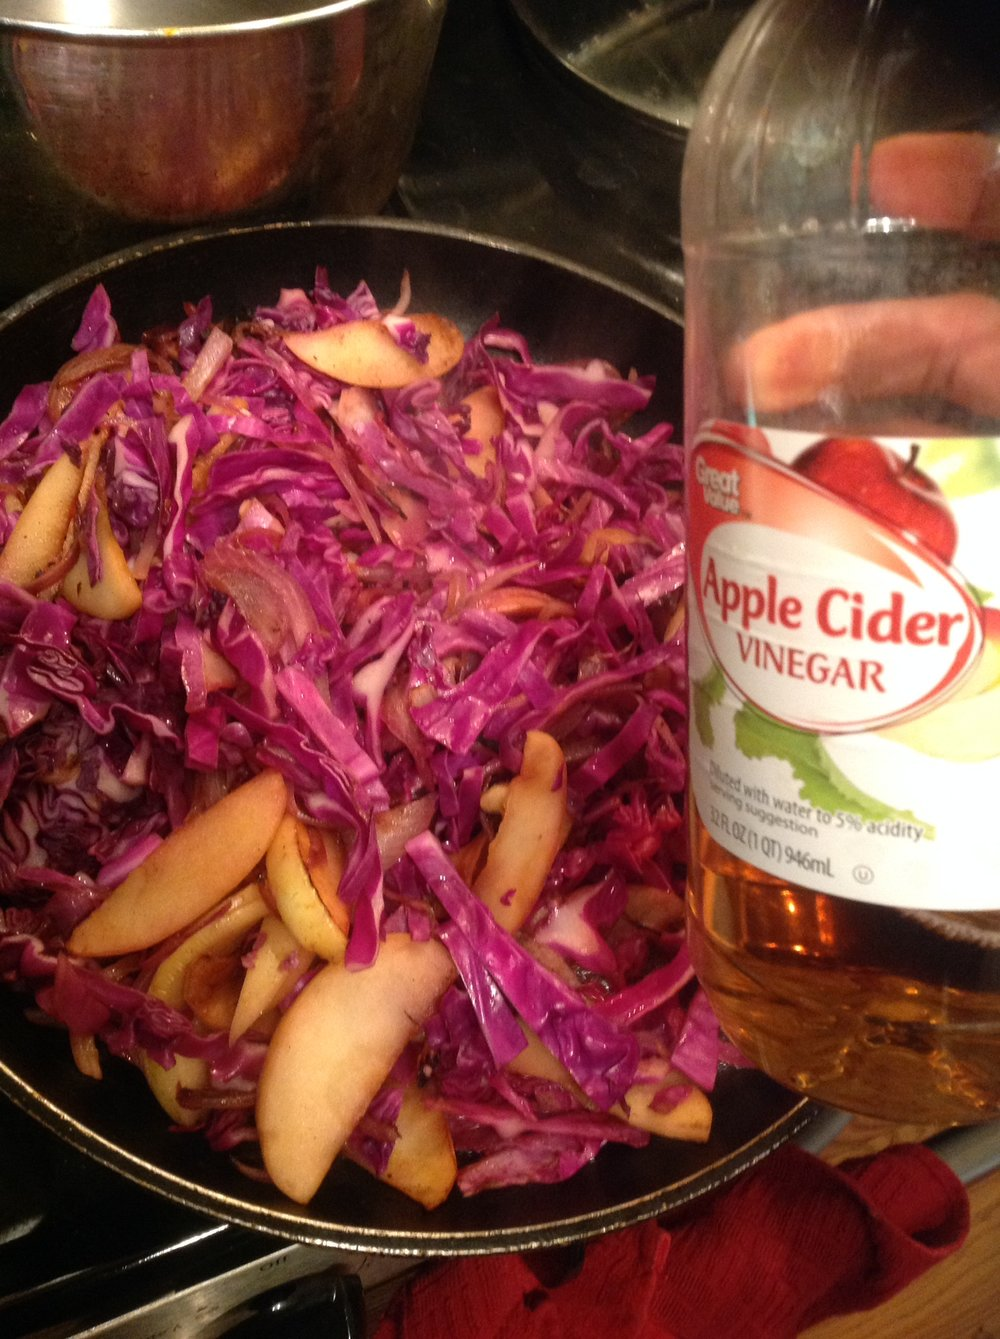 Chef's Plant-Based Tip: Braise red cabbage with apple and a touch of cider vinegar for a tangy-sweet, plant-based side dish. It's the ultimate easy recipe, packed with antioxidants, for staying healthy over the winter